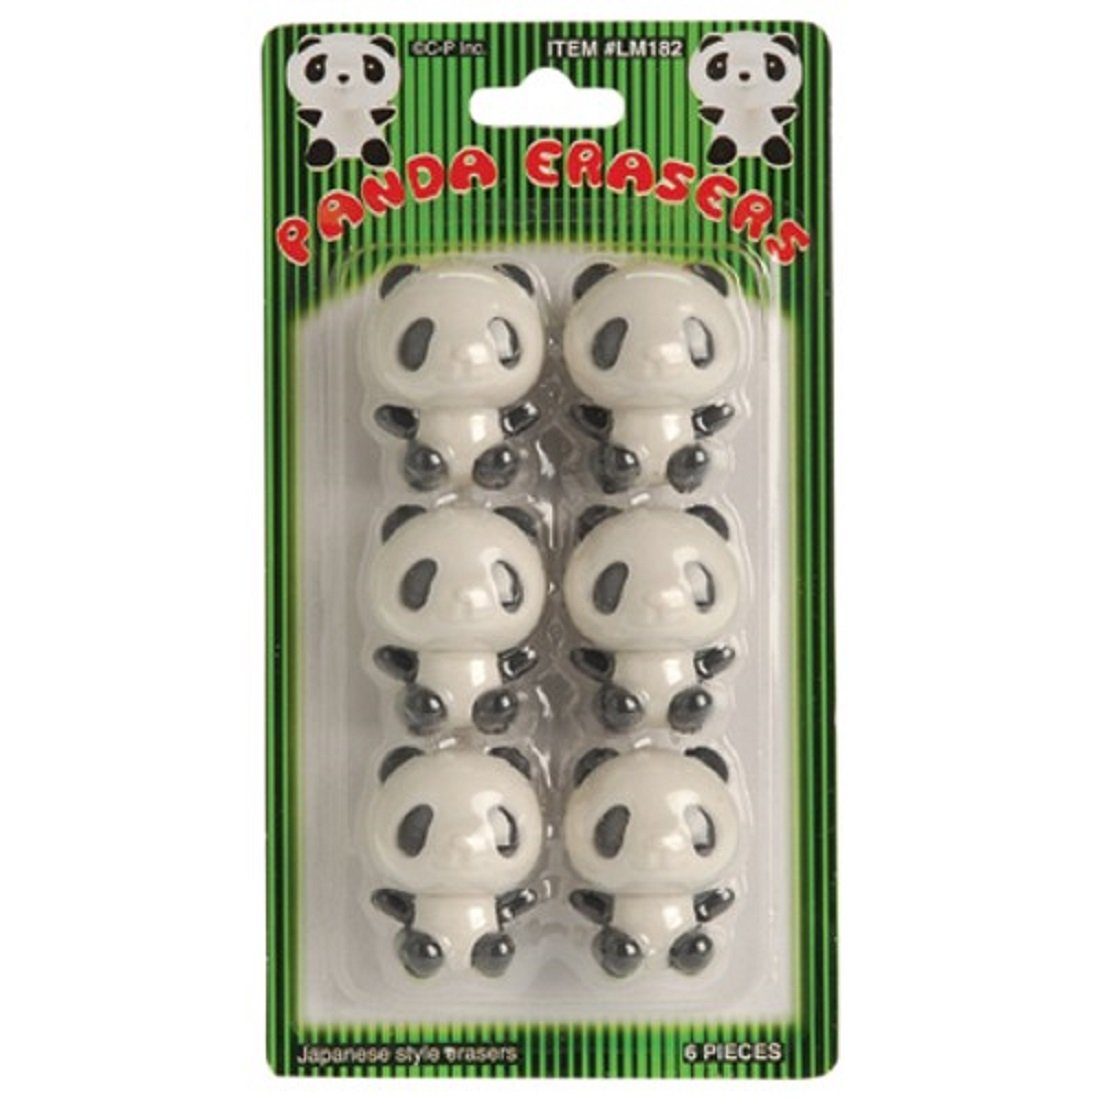 US Toy - Black & White Panda Theme Erasers, Size 1.5' (1-Pack of 6) Size 1.5 (1-Pack of 6) Toys & Child